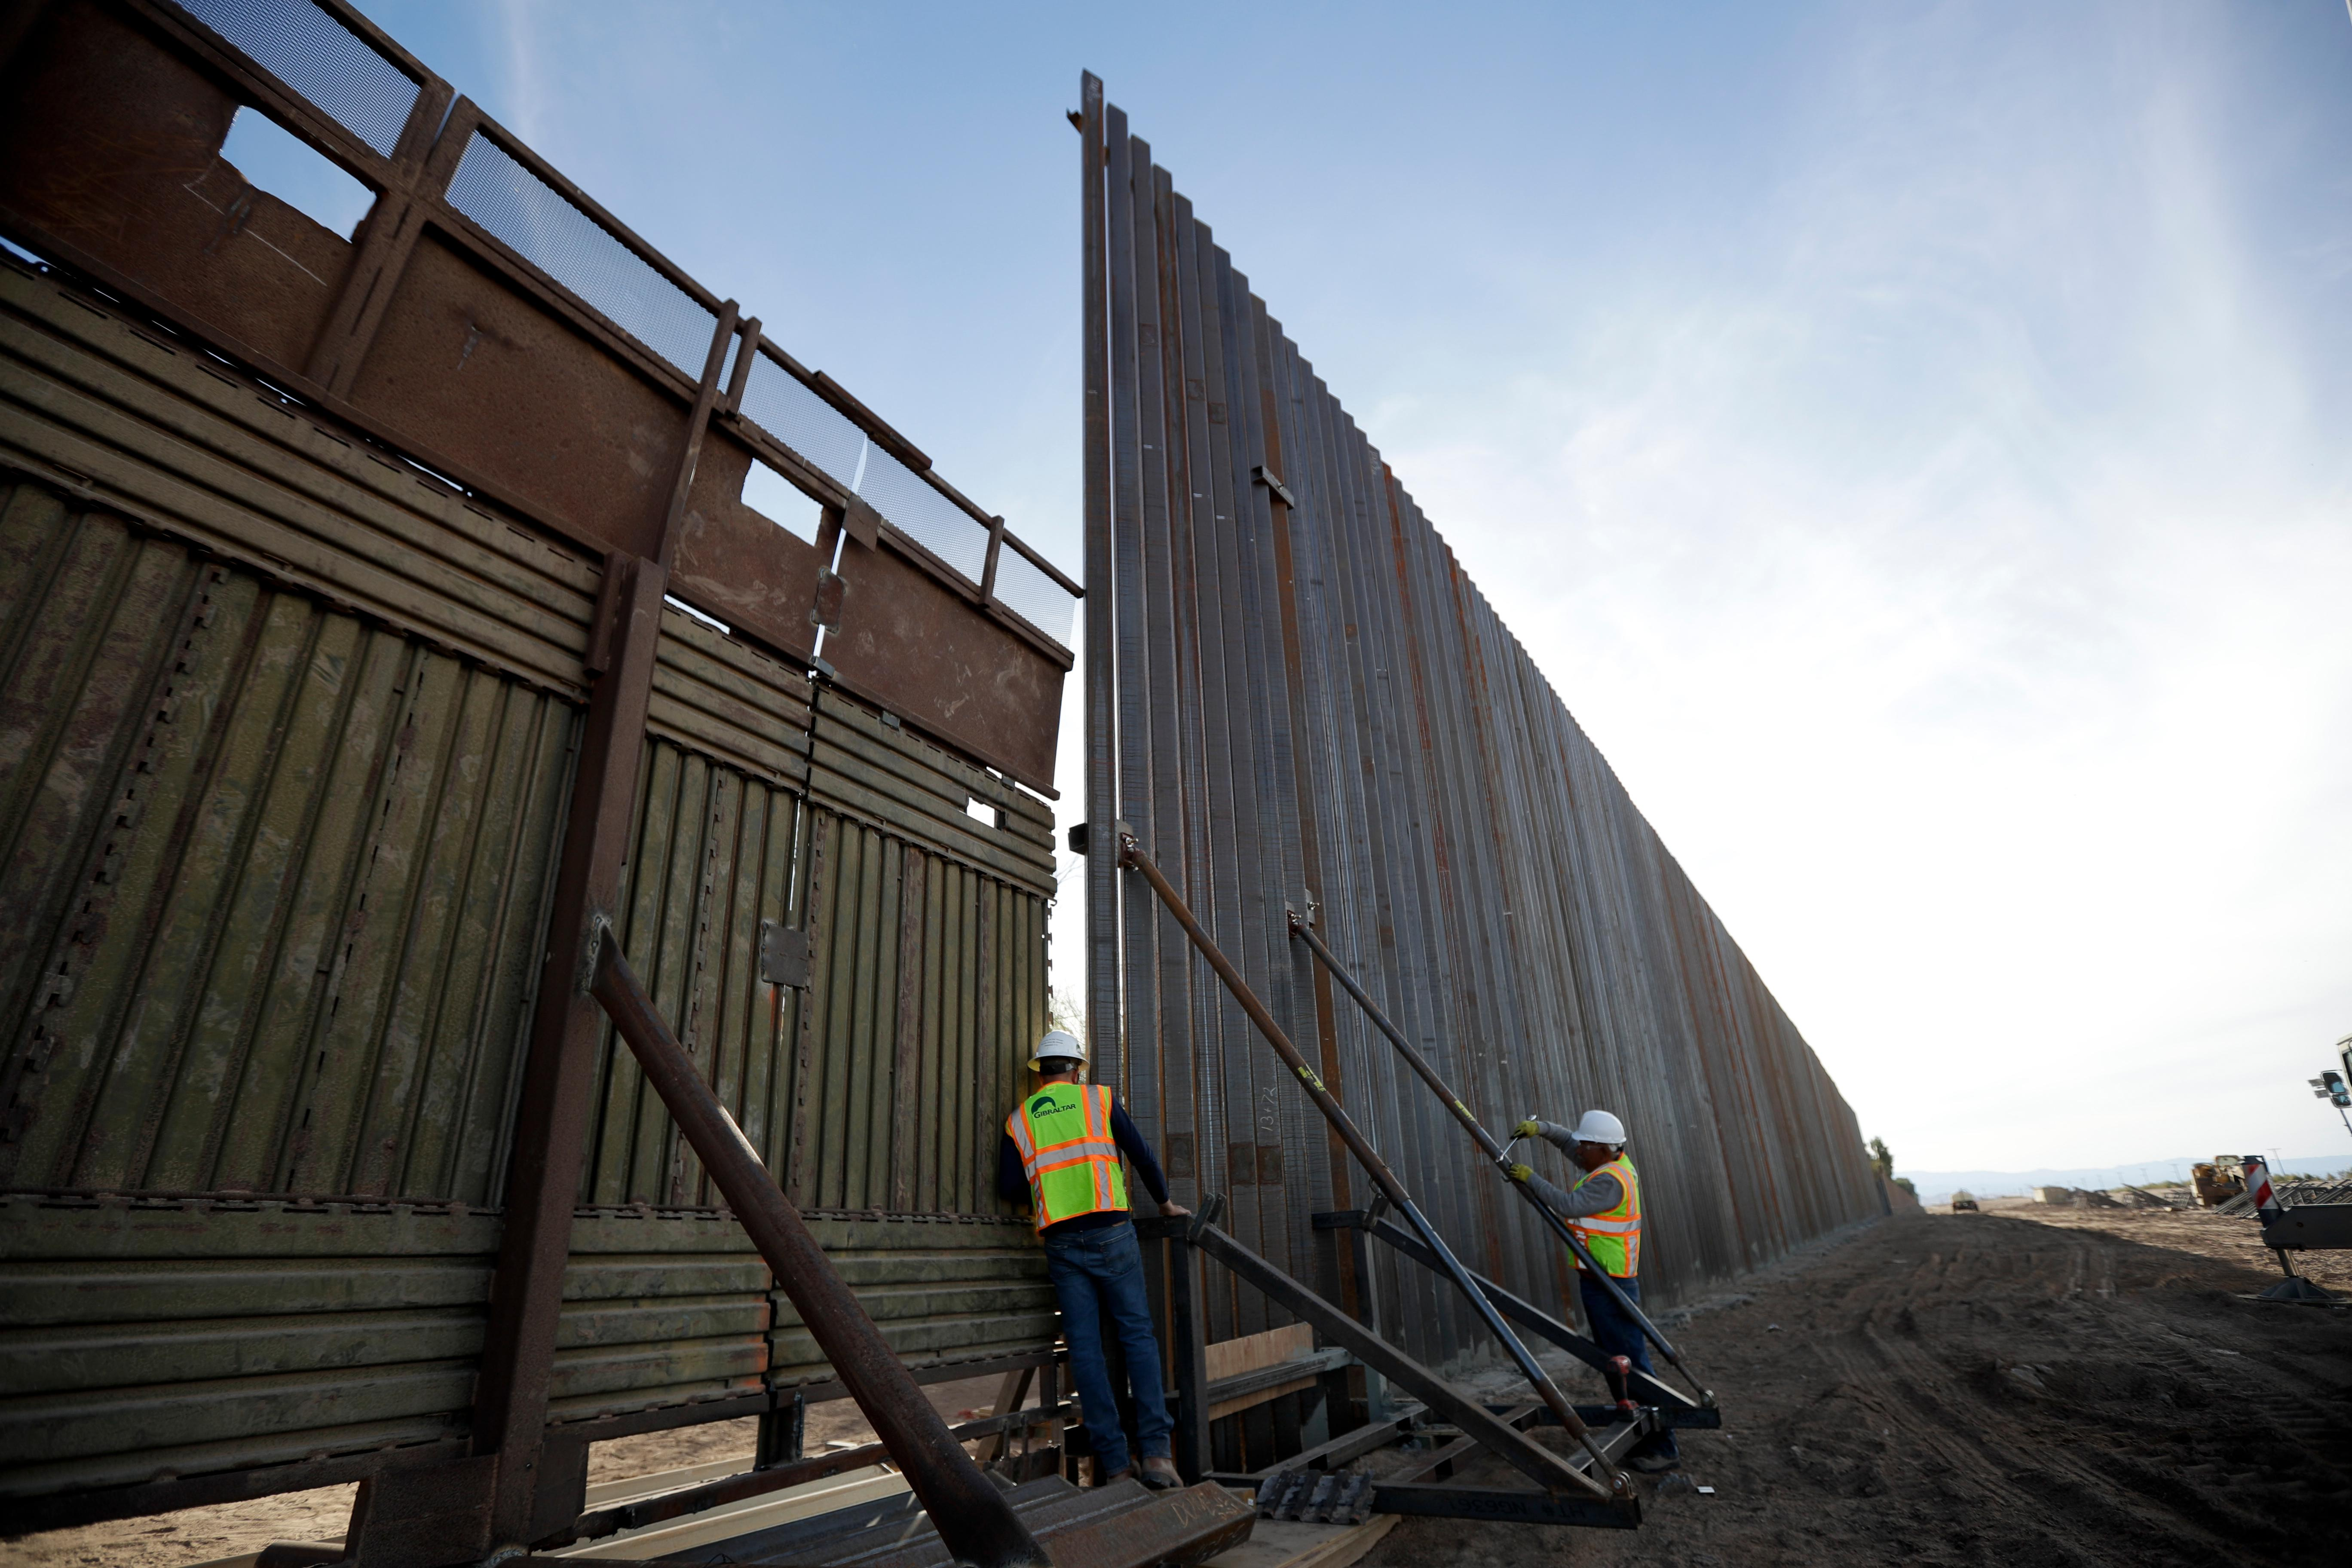 In this March 5, 2018, photo, a worker looks between the first section of a newly-constructed structure along the border separating Mexicali, Mexico and Calexico, Calif. As Donald Trump prepares for his first visit to the U.S.-Mexico border as president, little has changed despite the heated rhetoric. (AP Photo/Gregory Bull)